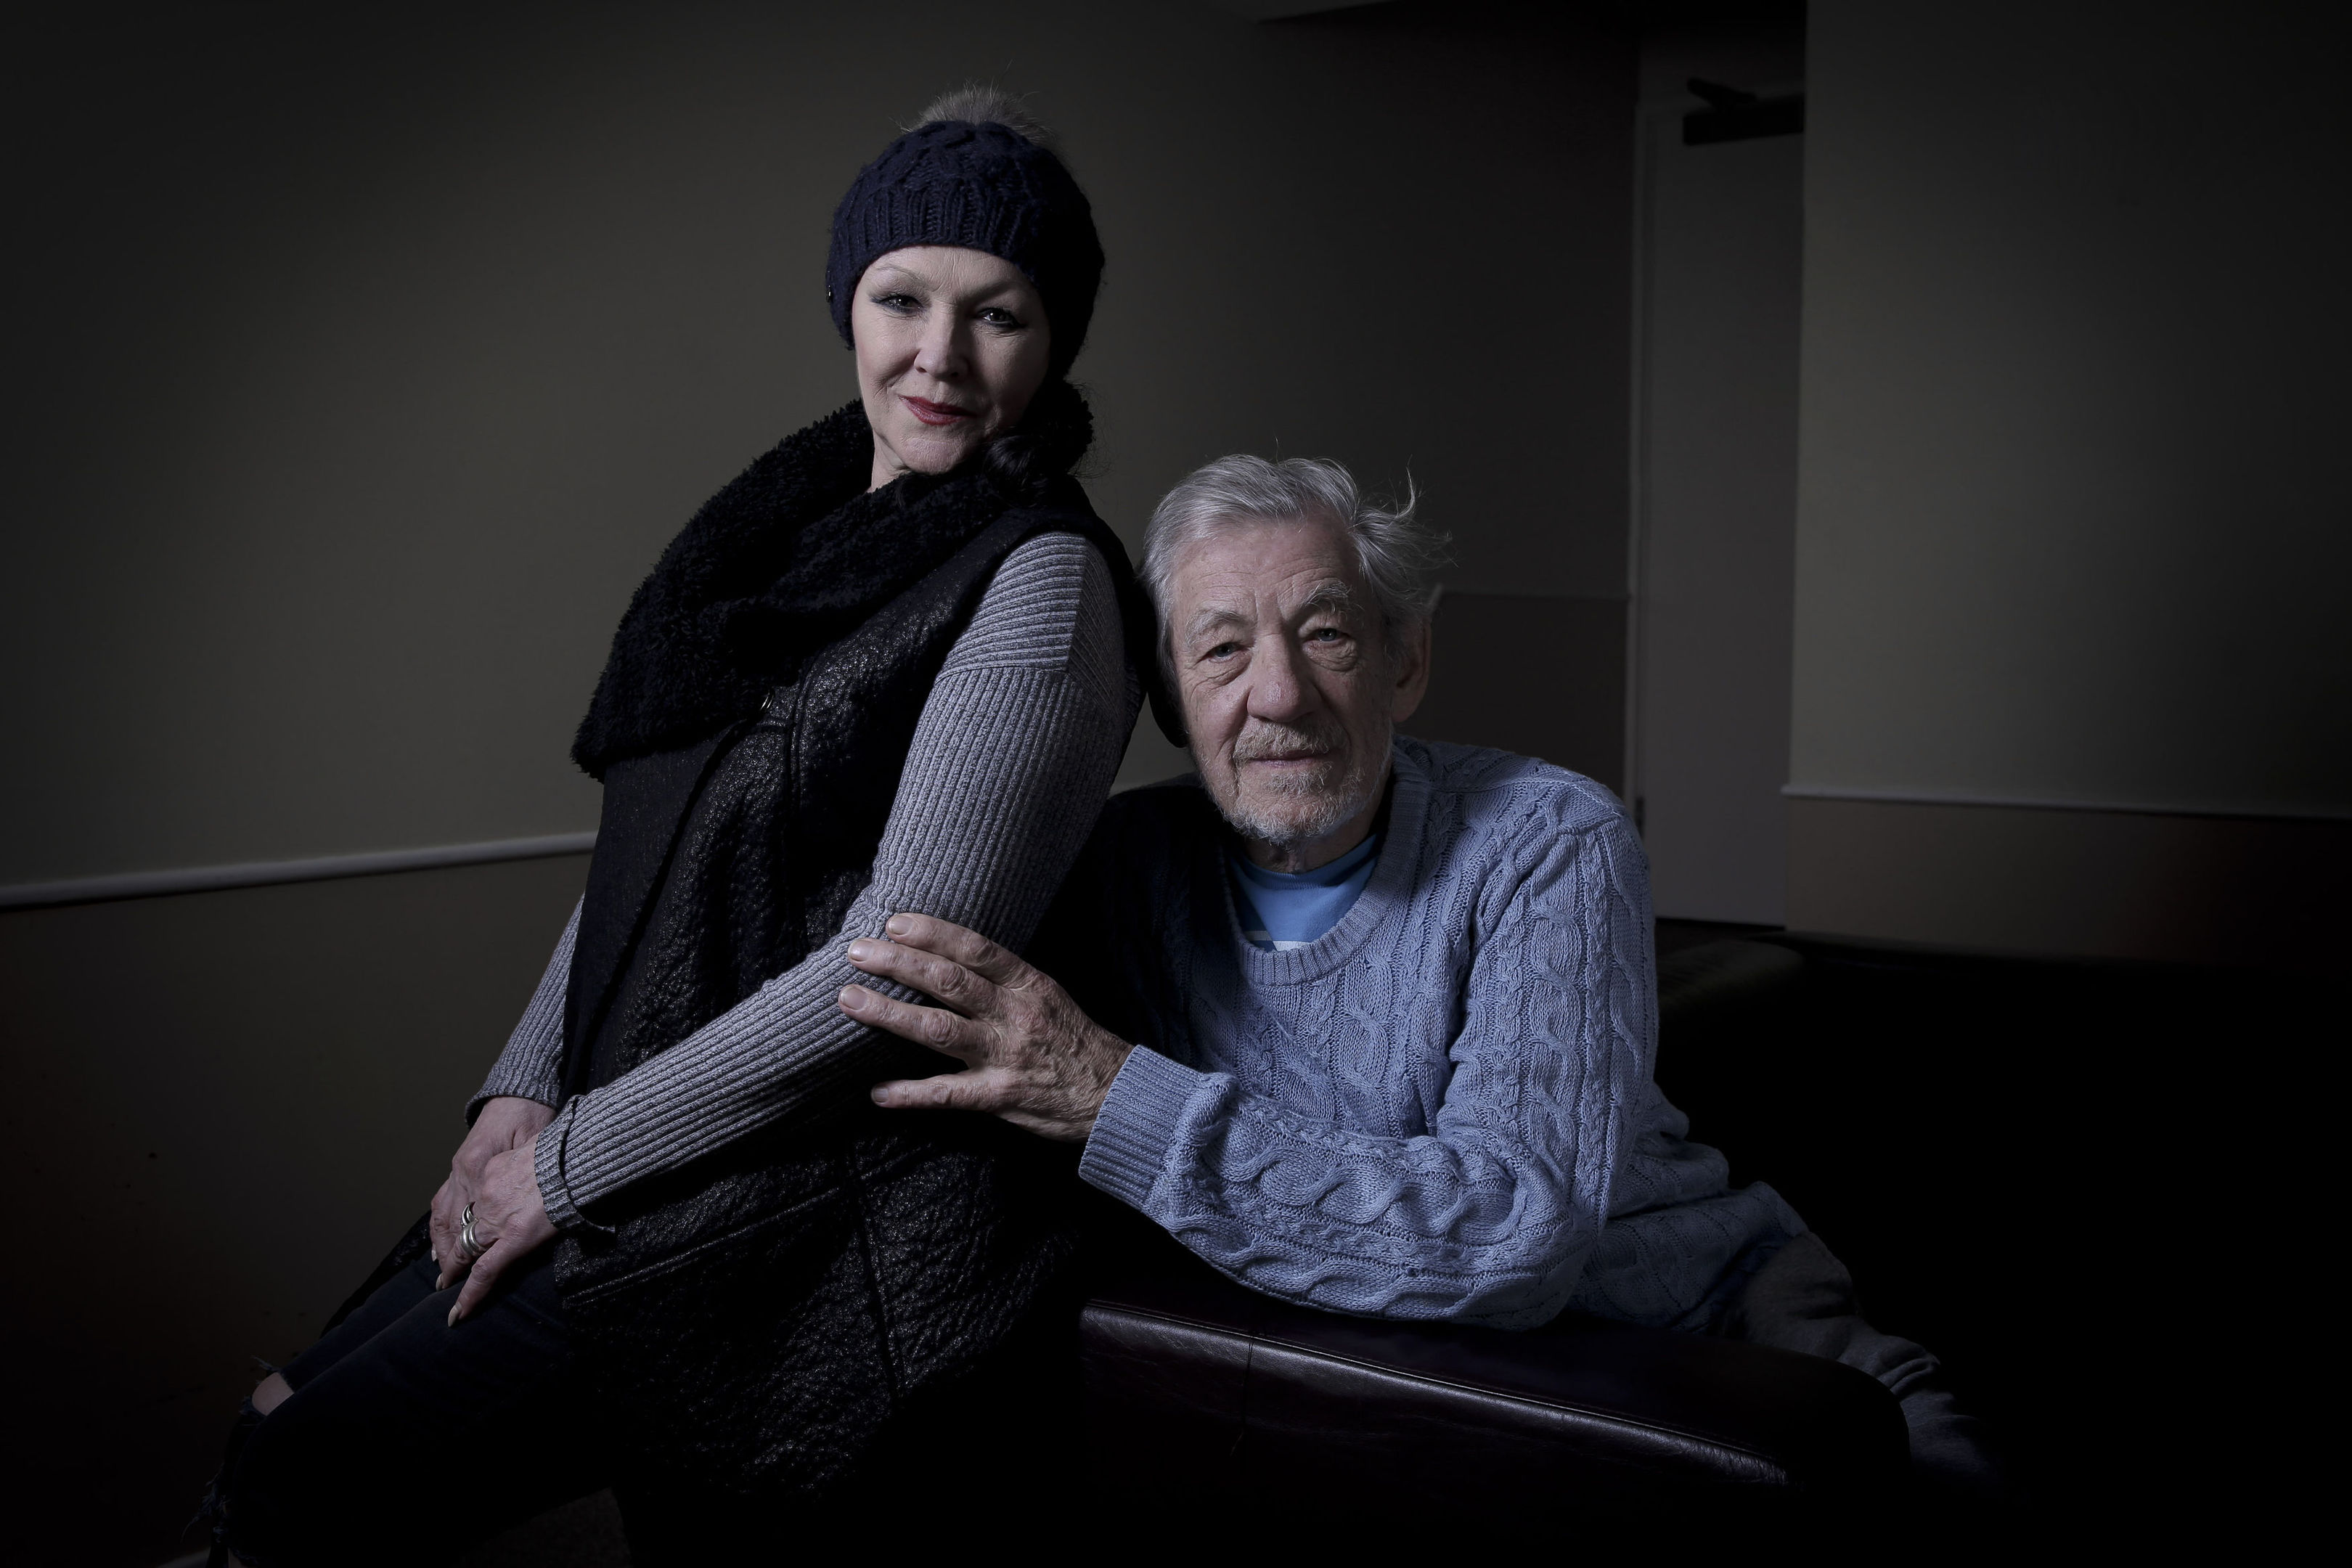 Sir Ian McKellen and Frances Barber, who will star in a new adaptation of Paradise Lost on Radio 4. (Tricia Yourkevich/BBC/PA Wire)